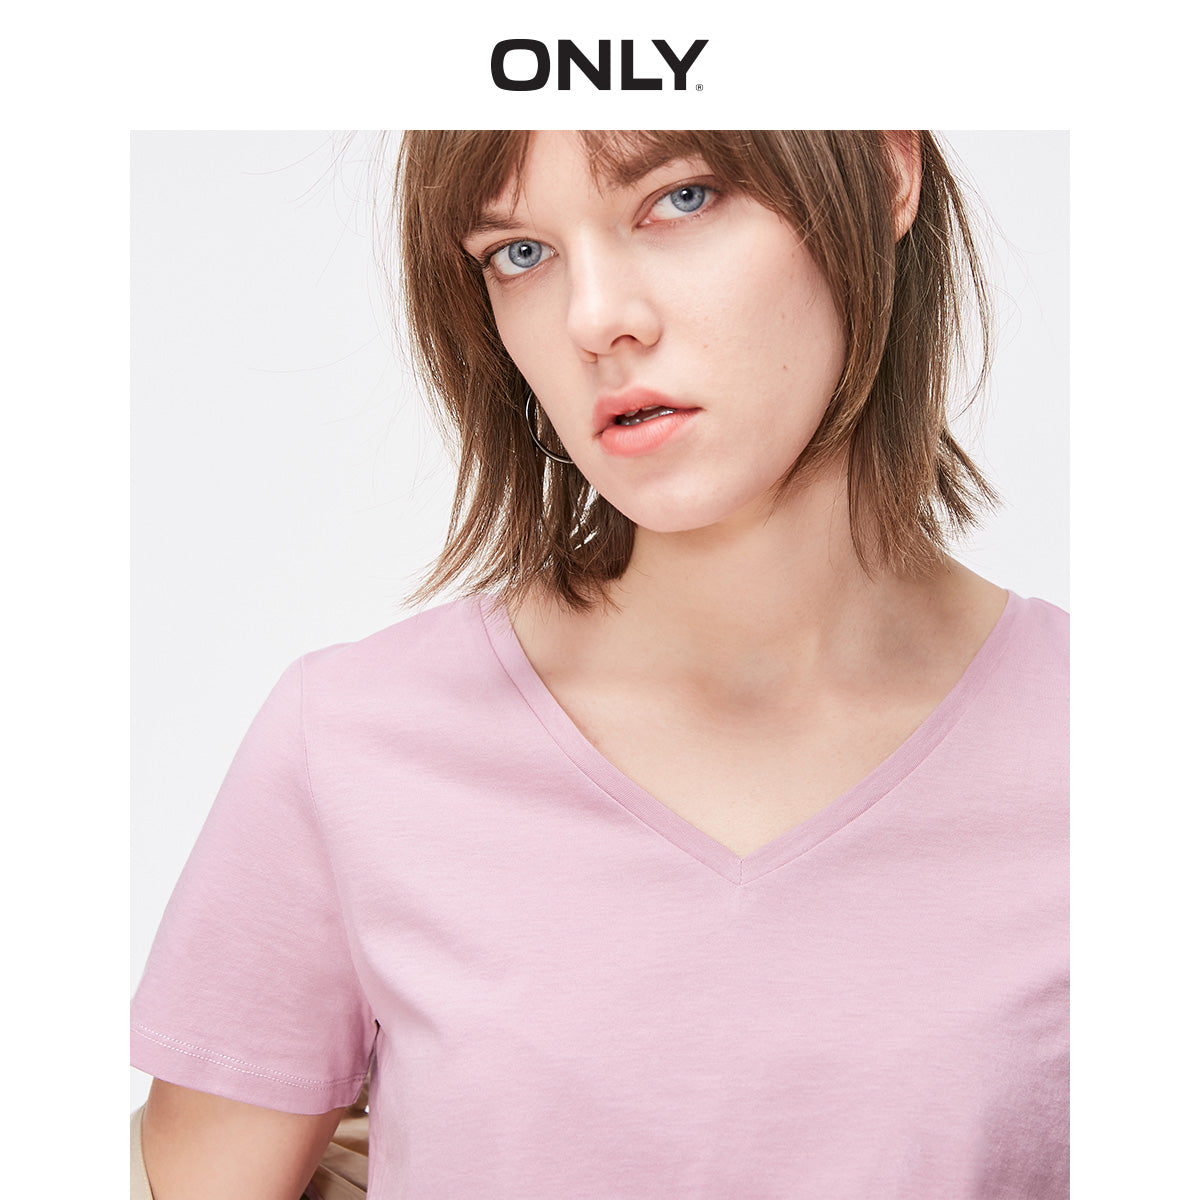 ONLY Women's Pure Color V-neckline 100% Cotton Short-sleeved T-shirt | 119201636